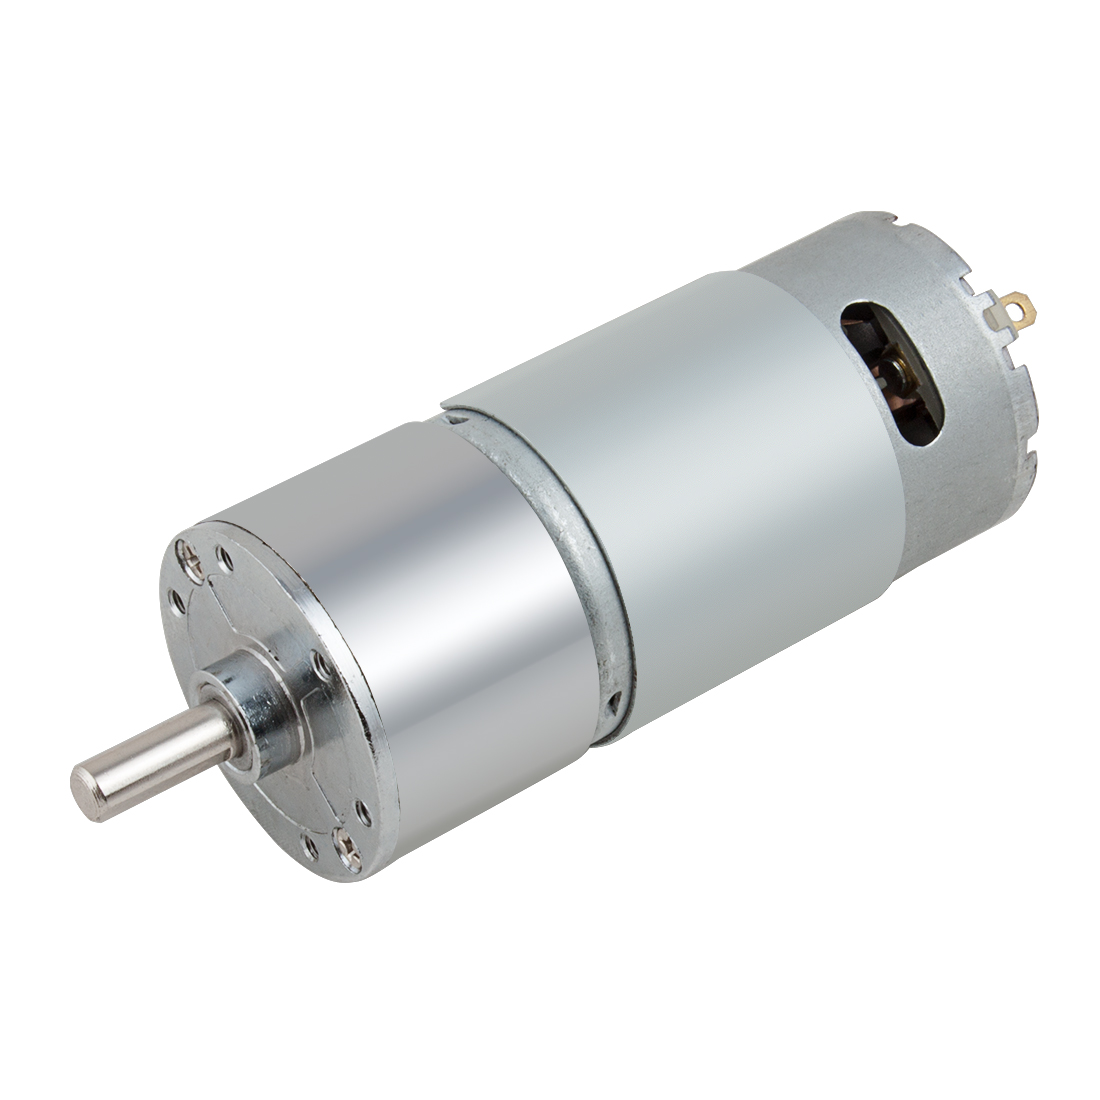 DC 12V 300RPM Gear Box Motor Speed Reduction Electrical Gearbox Centric Output Shaft